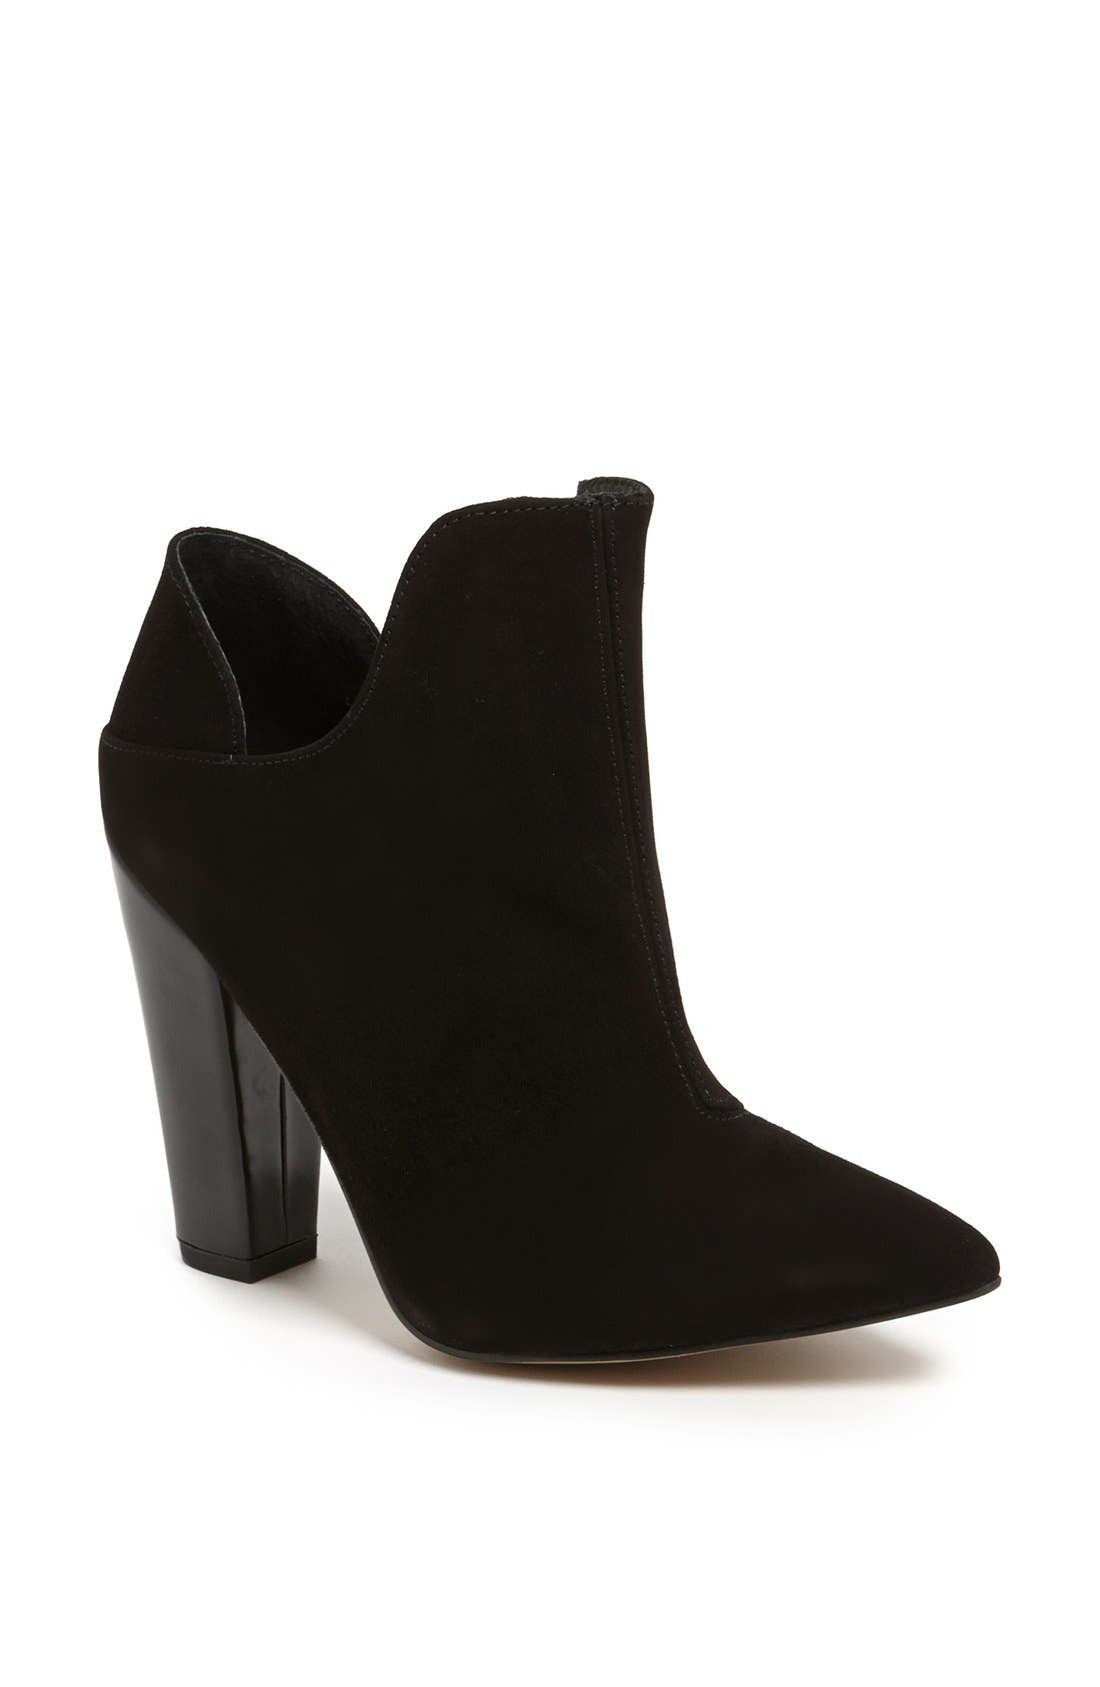 Main Image - Topshop 'Again' Ankle Boot